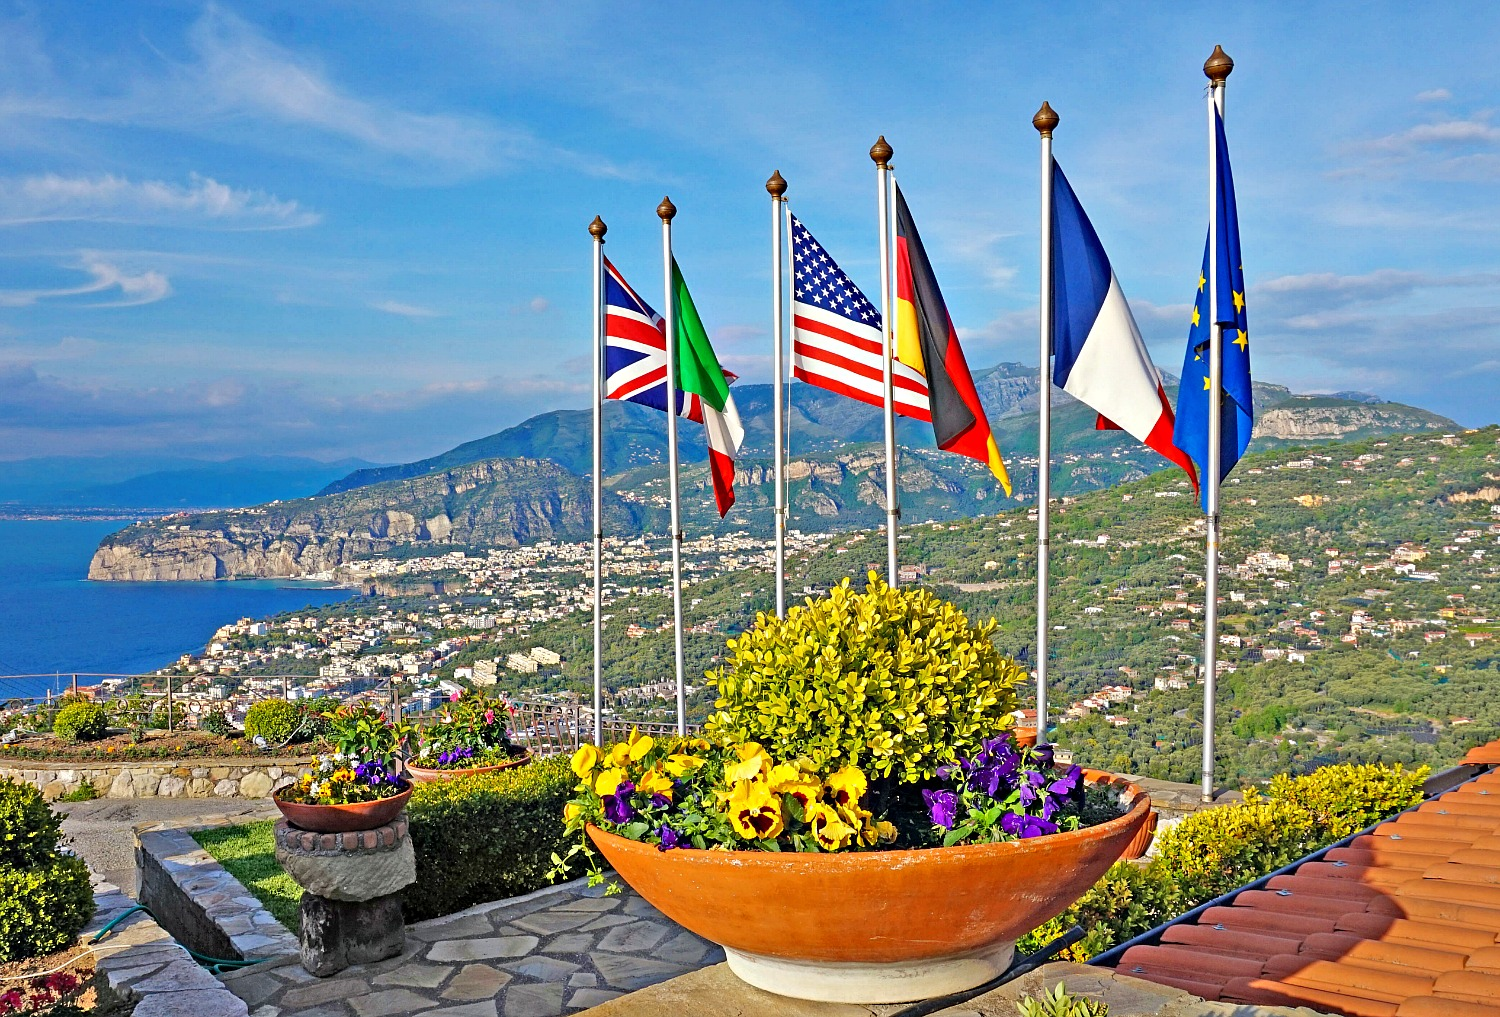 Views of Sorrento in the Amalfi Coast with flags.